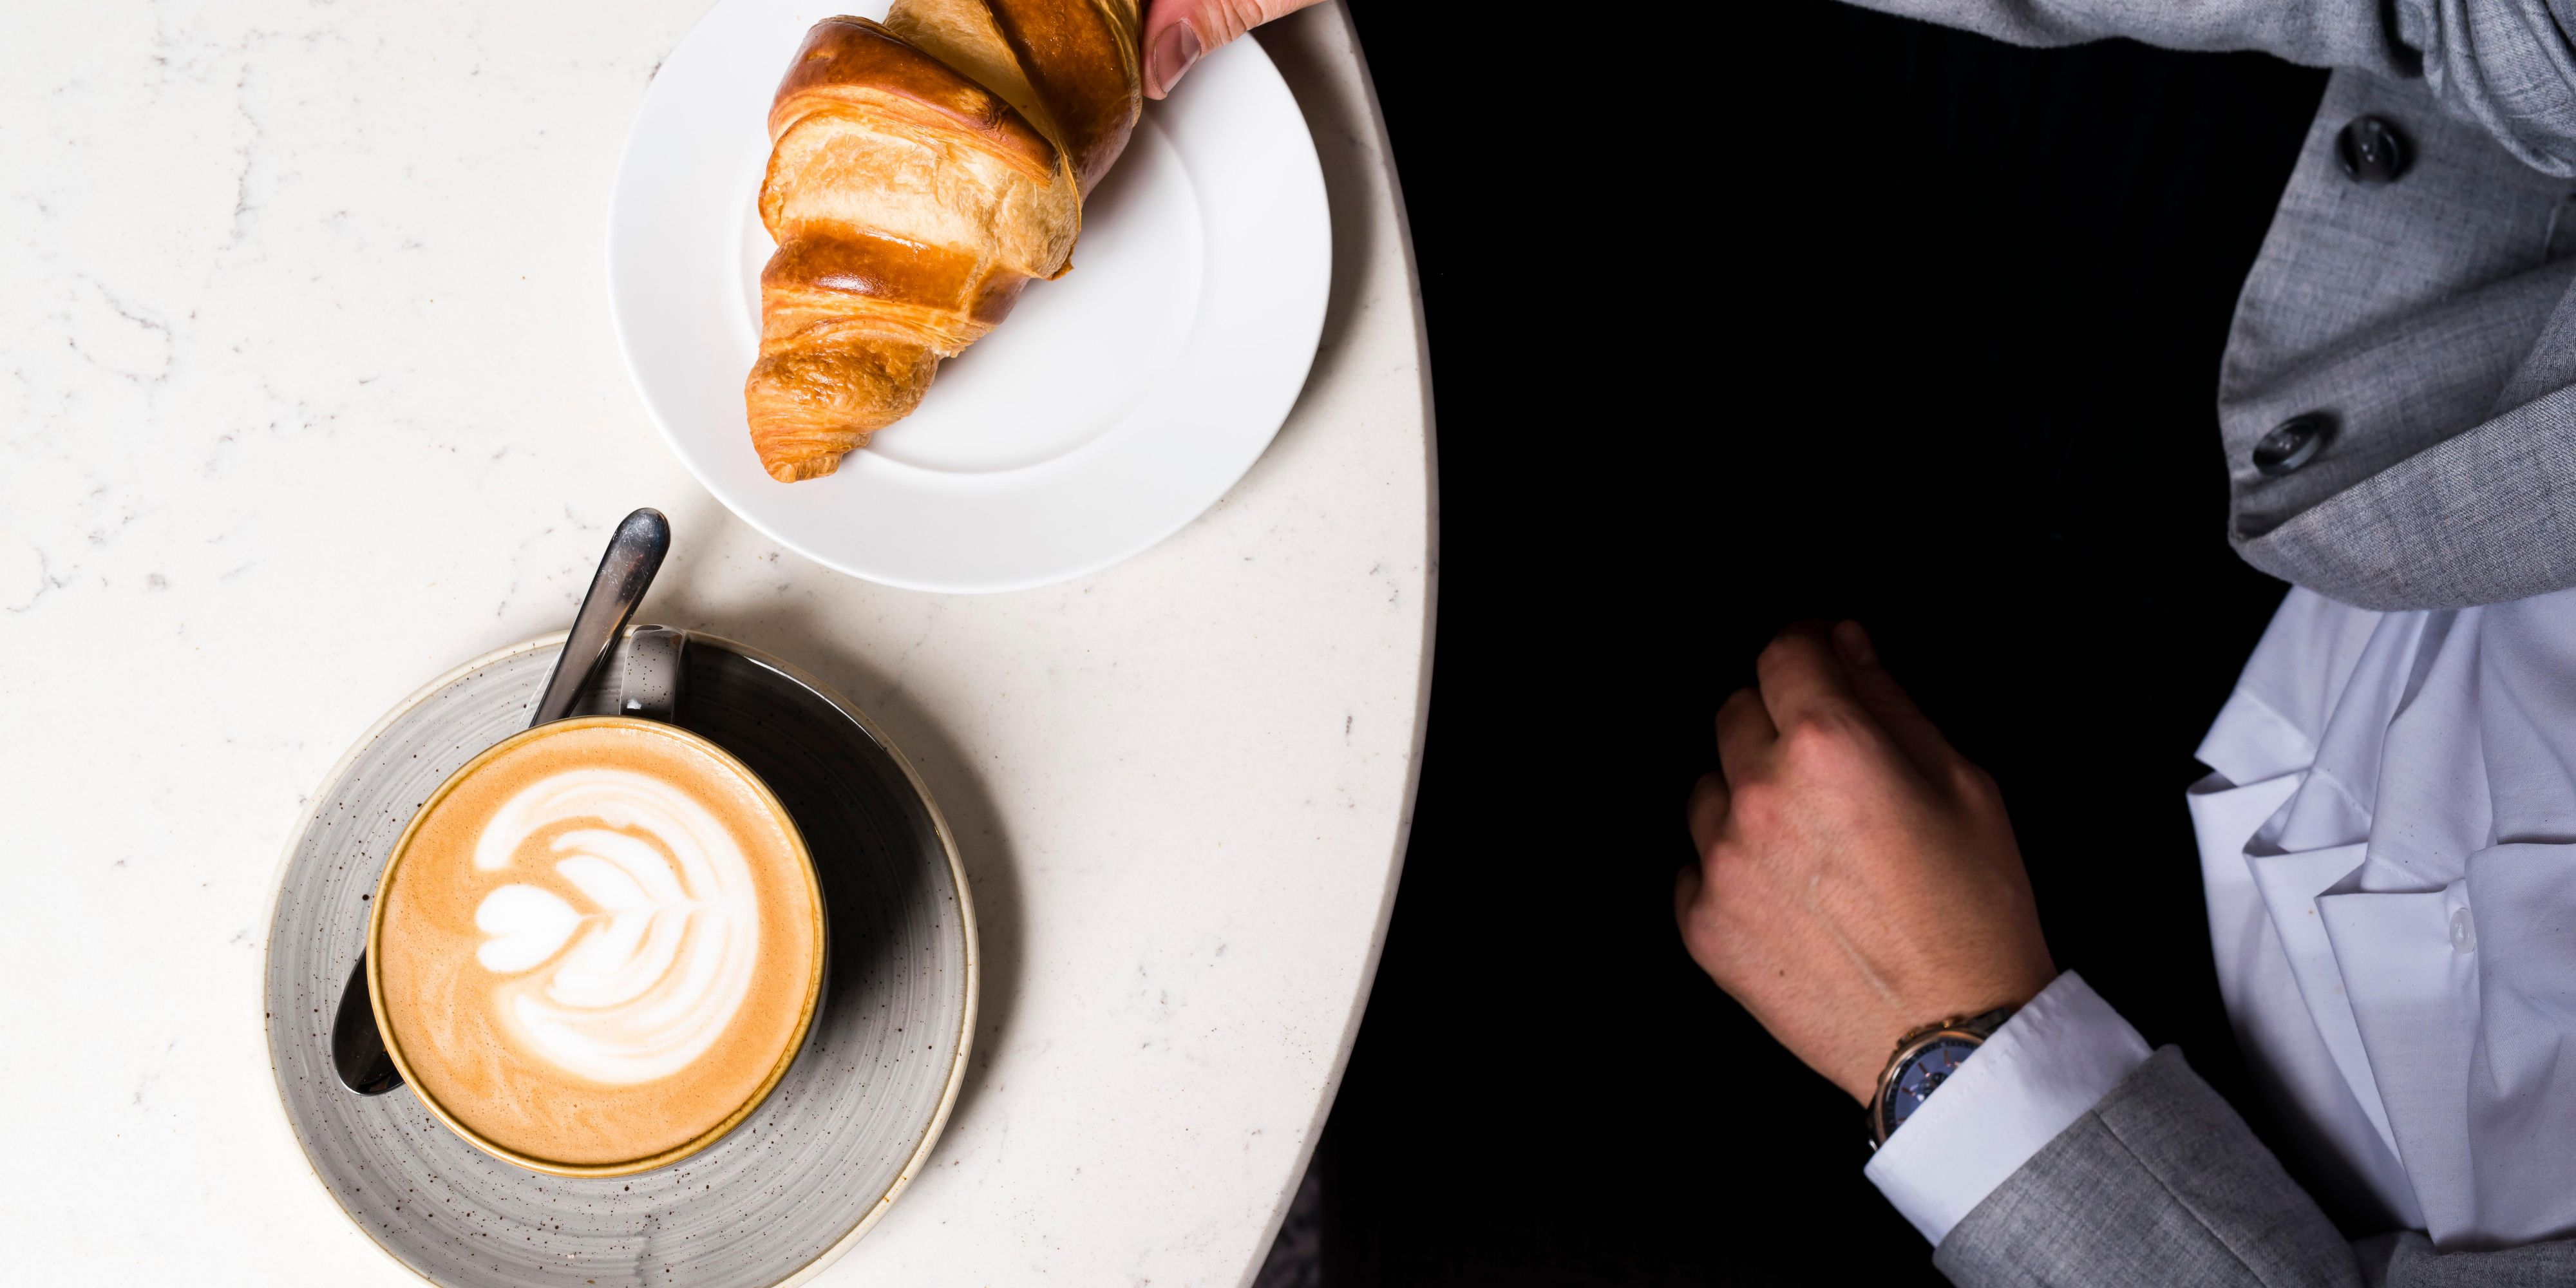 Locally-roasted coffee and house made pastries at BLVD bistro.